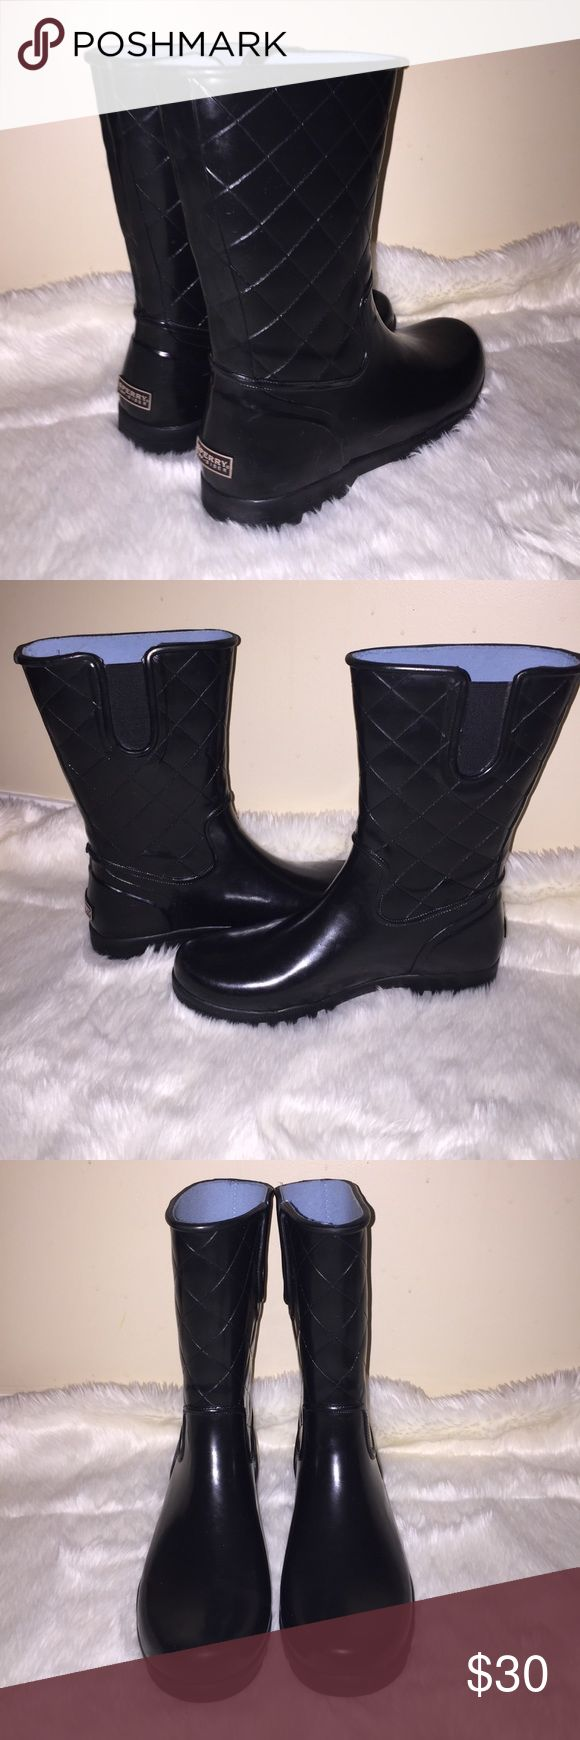 Sperry Top-Sider Rubber Rain Boots Quilted Pattern Pre-owned, Gently Used. Quilted Pattern Sperry Top-Sider Rubber Rain Boots. Color | Black. Women's size 11. Baby Blue Interrior. Very cute& stylish. Sperry Shoes Winter & Rain Boots